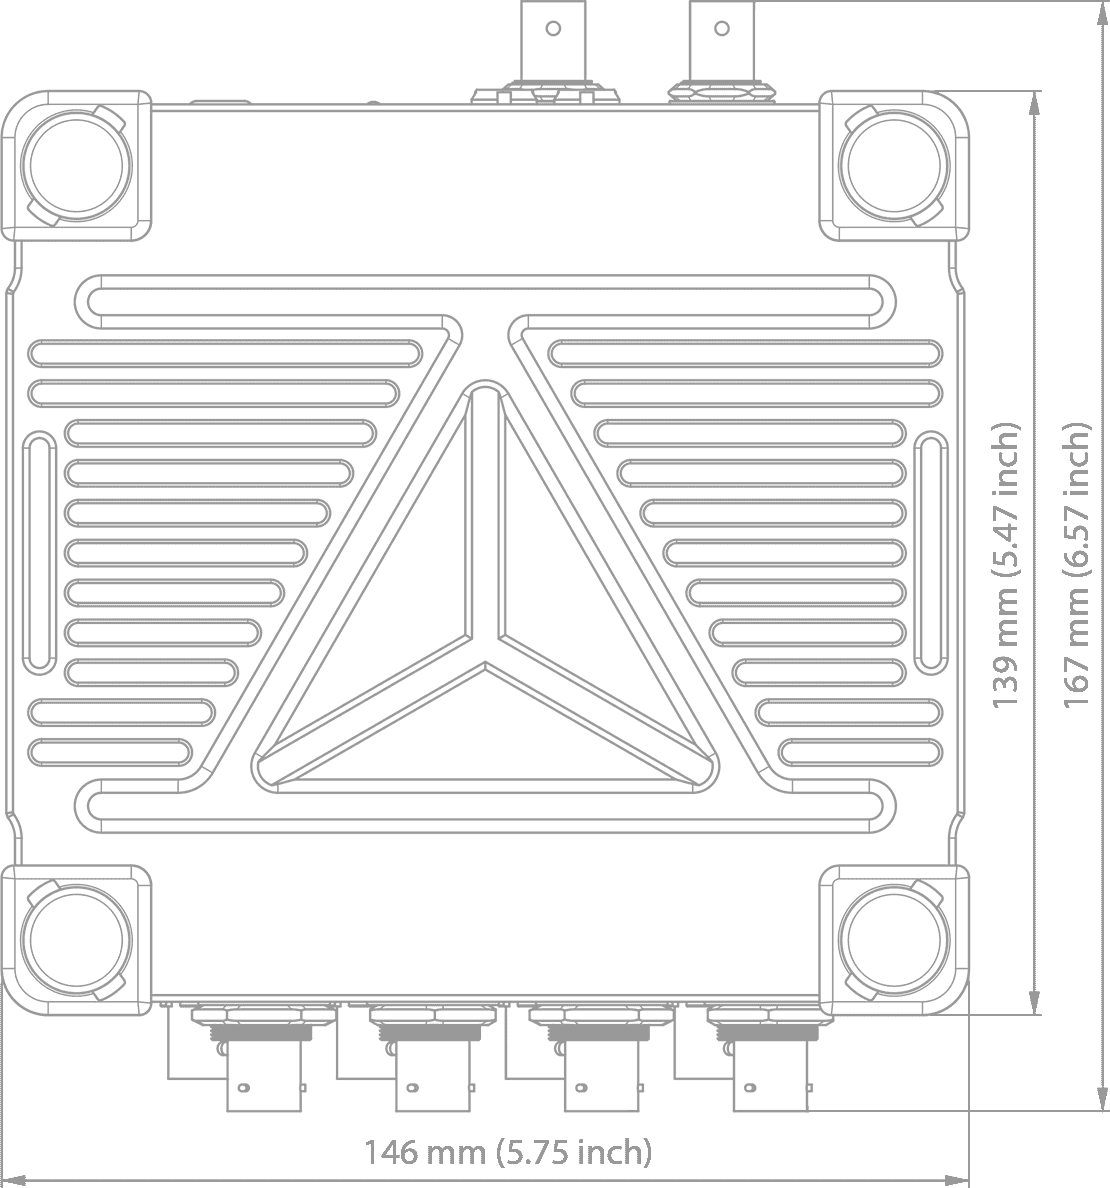 Interfaces aéronautique  technical drawing